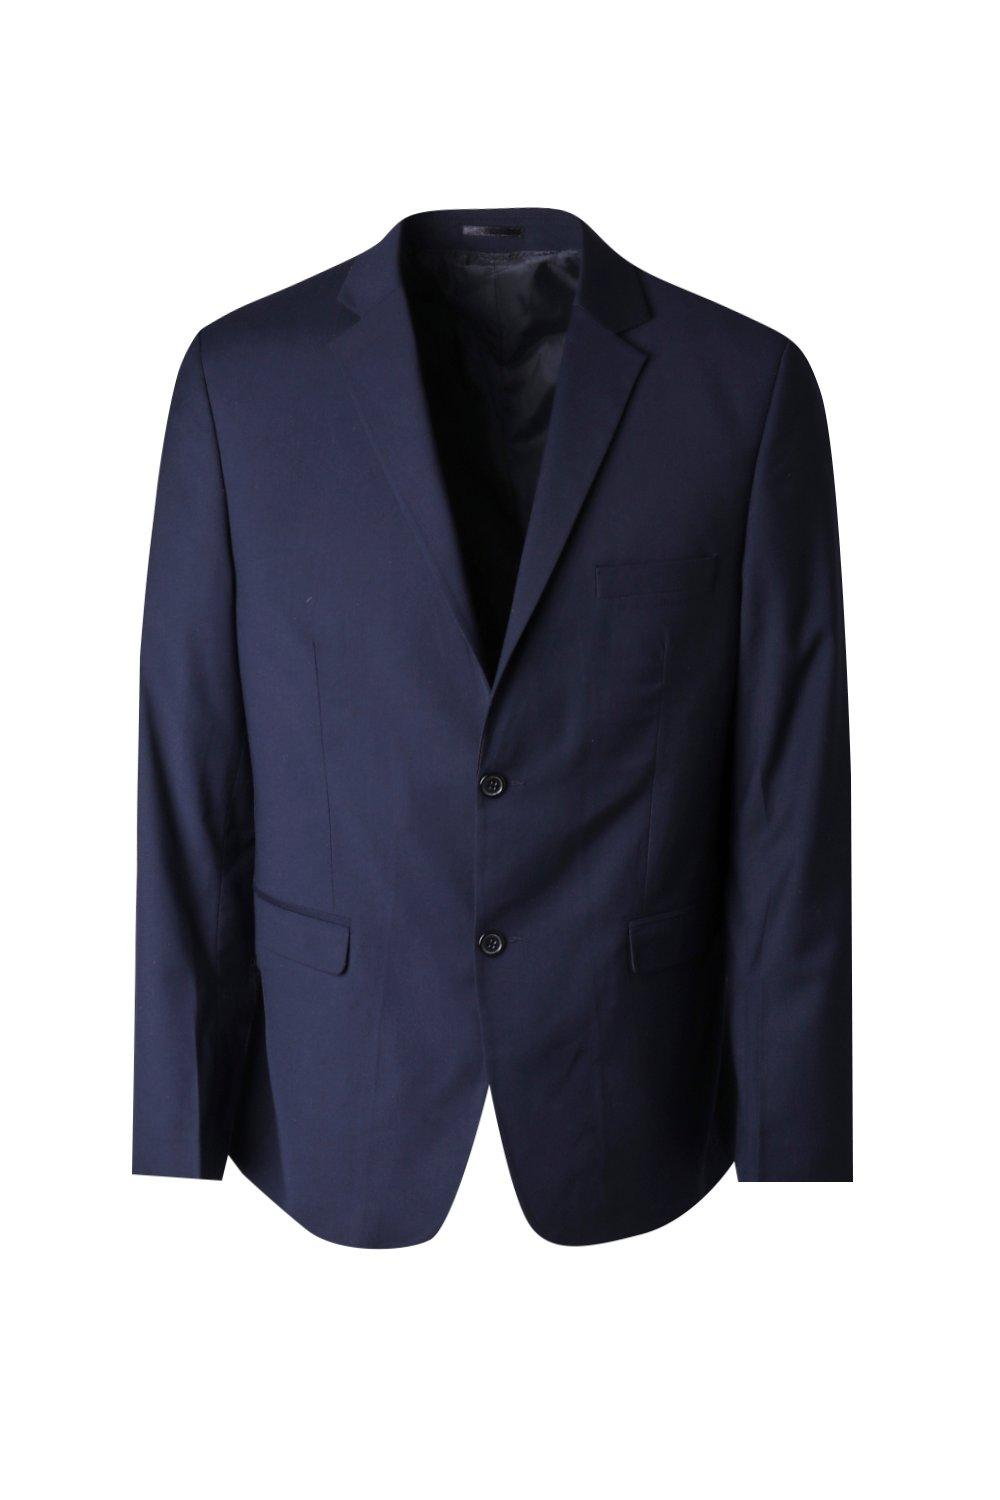 boohooMAN navy Big And Tall Skinny Fit Suit Jacket